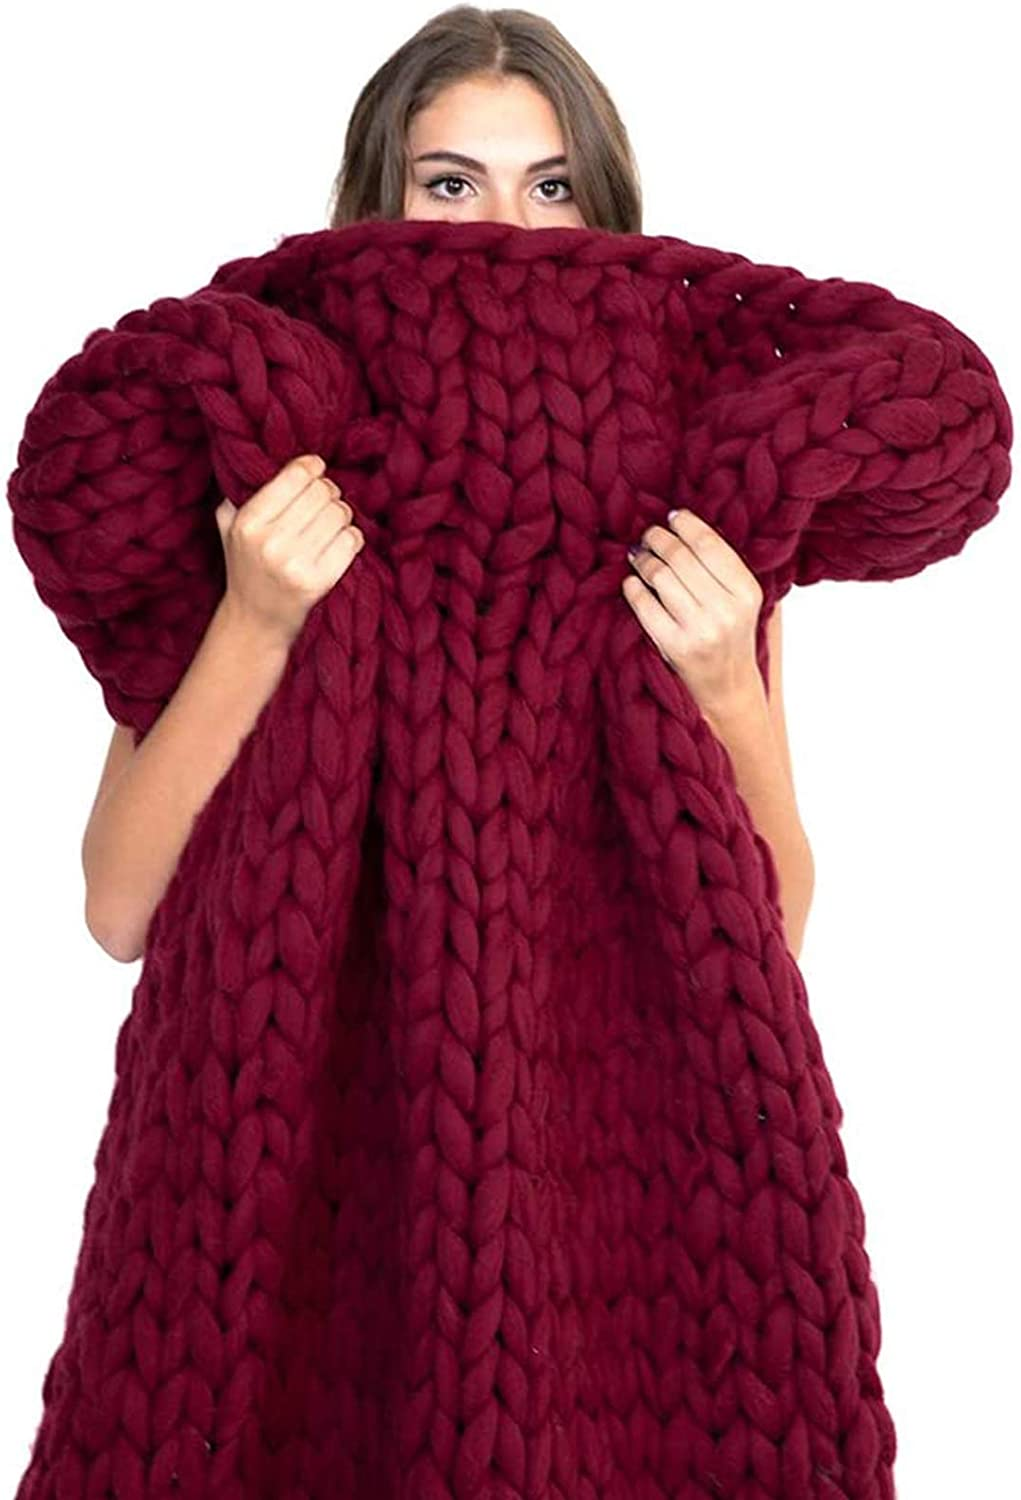 LICHUXIN Quantity limited Hand Knitted Yarn Throw Chunky Conditioning Air service Blanket